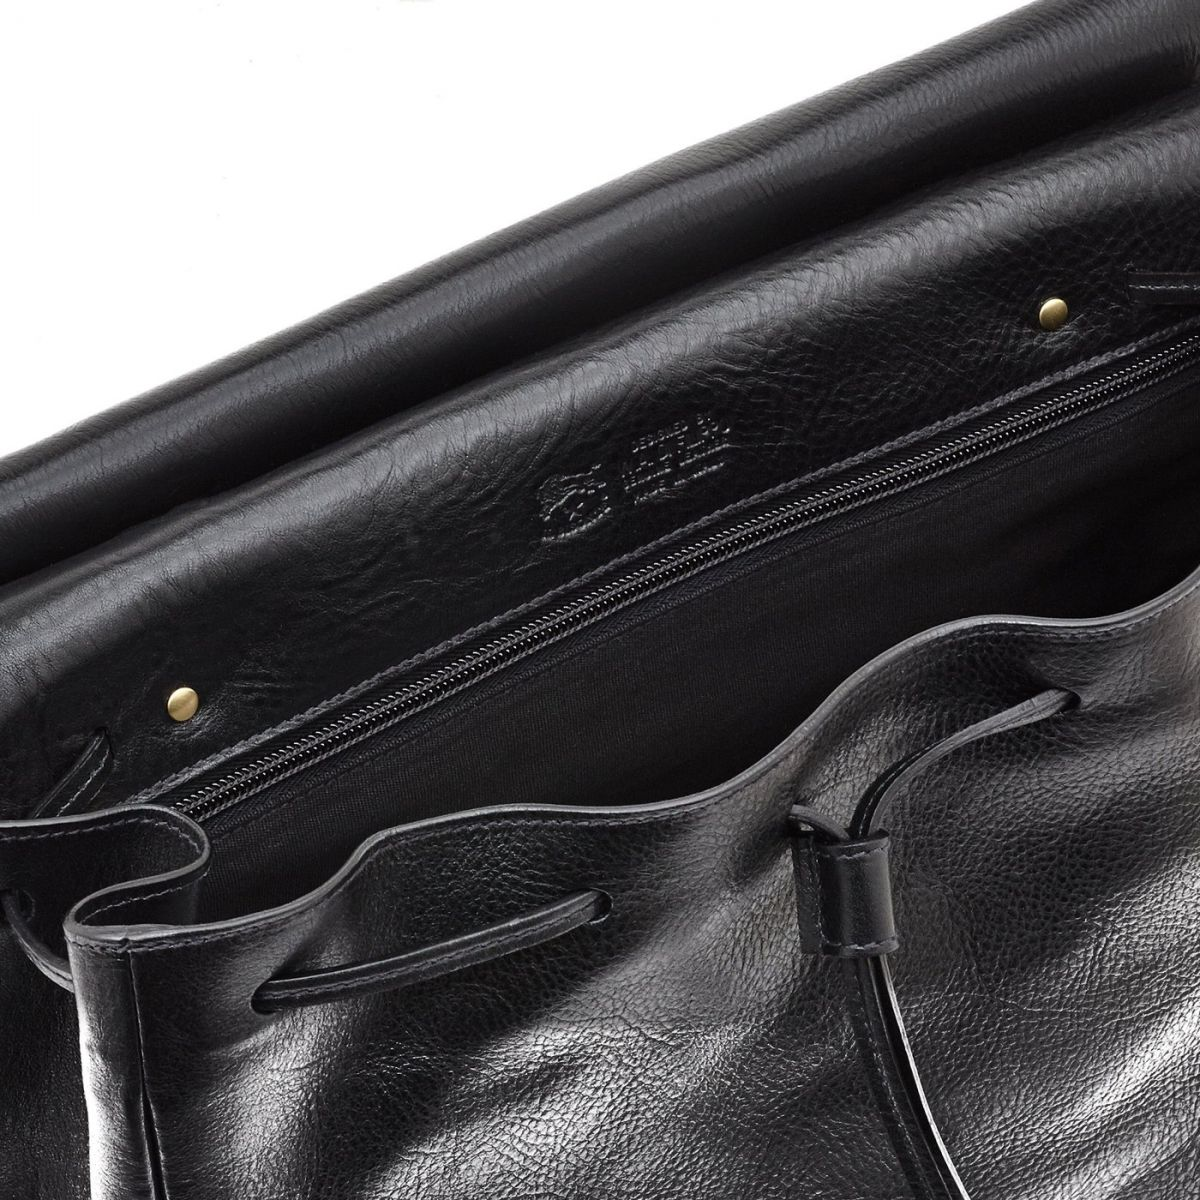 Women's Handbag Tornabuoni in Cowhide Double Leather BTH051 color Black | Details